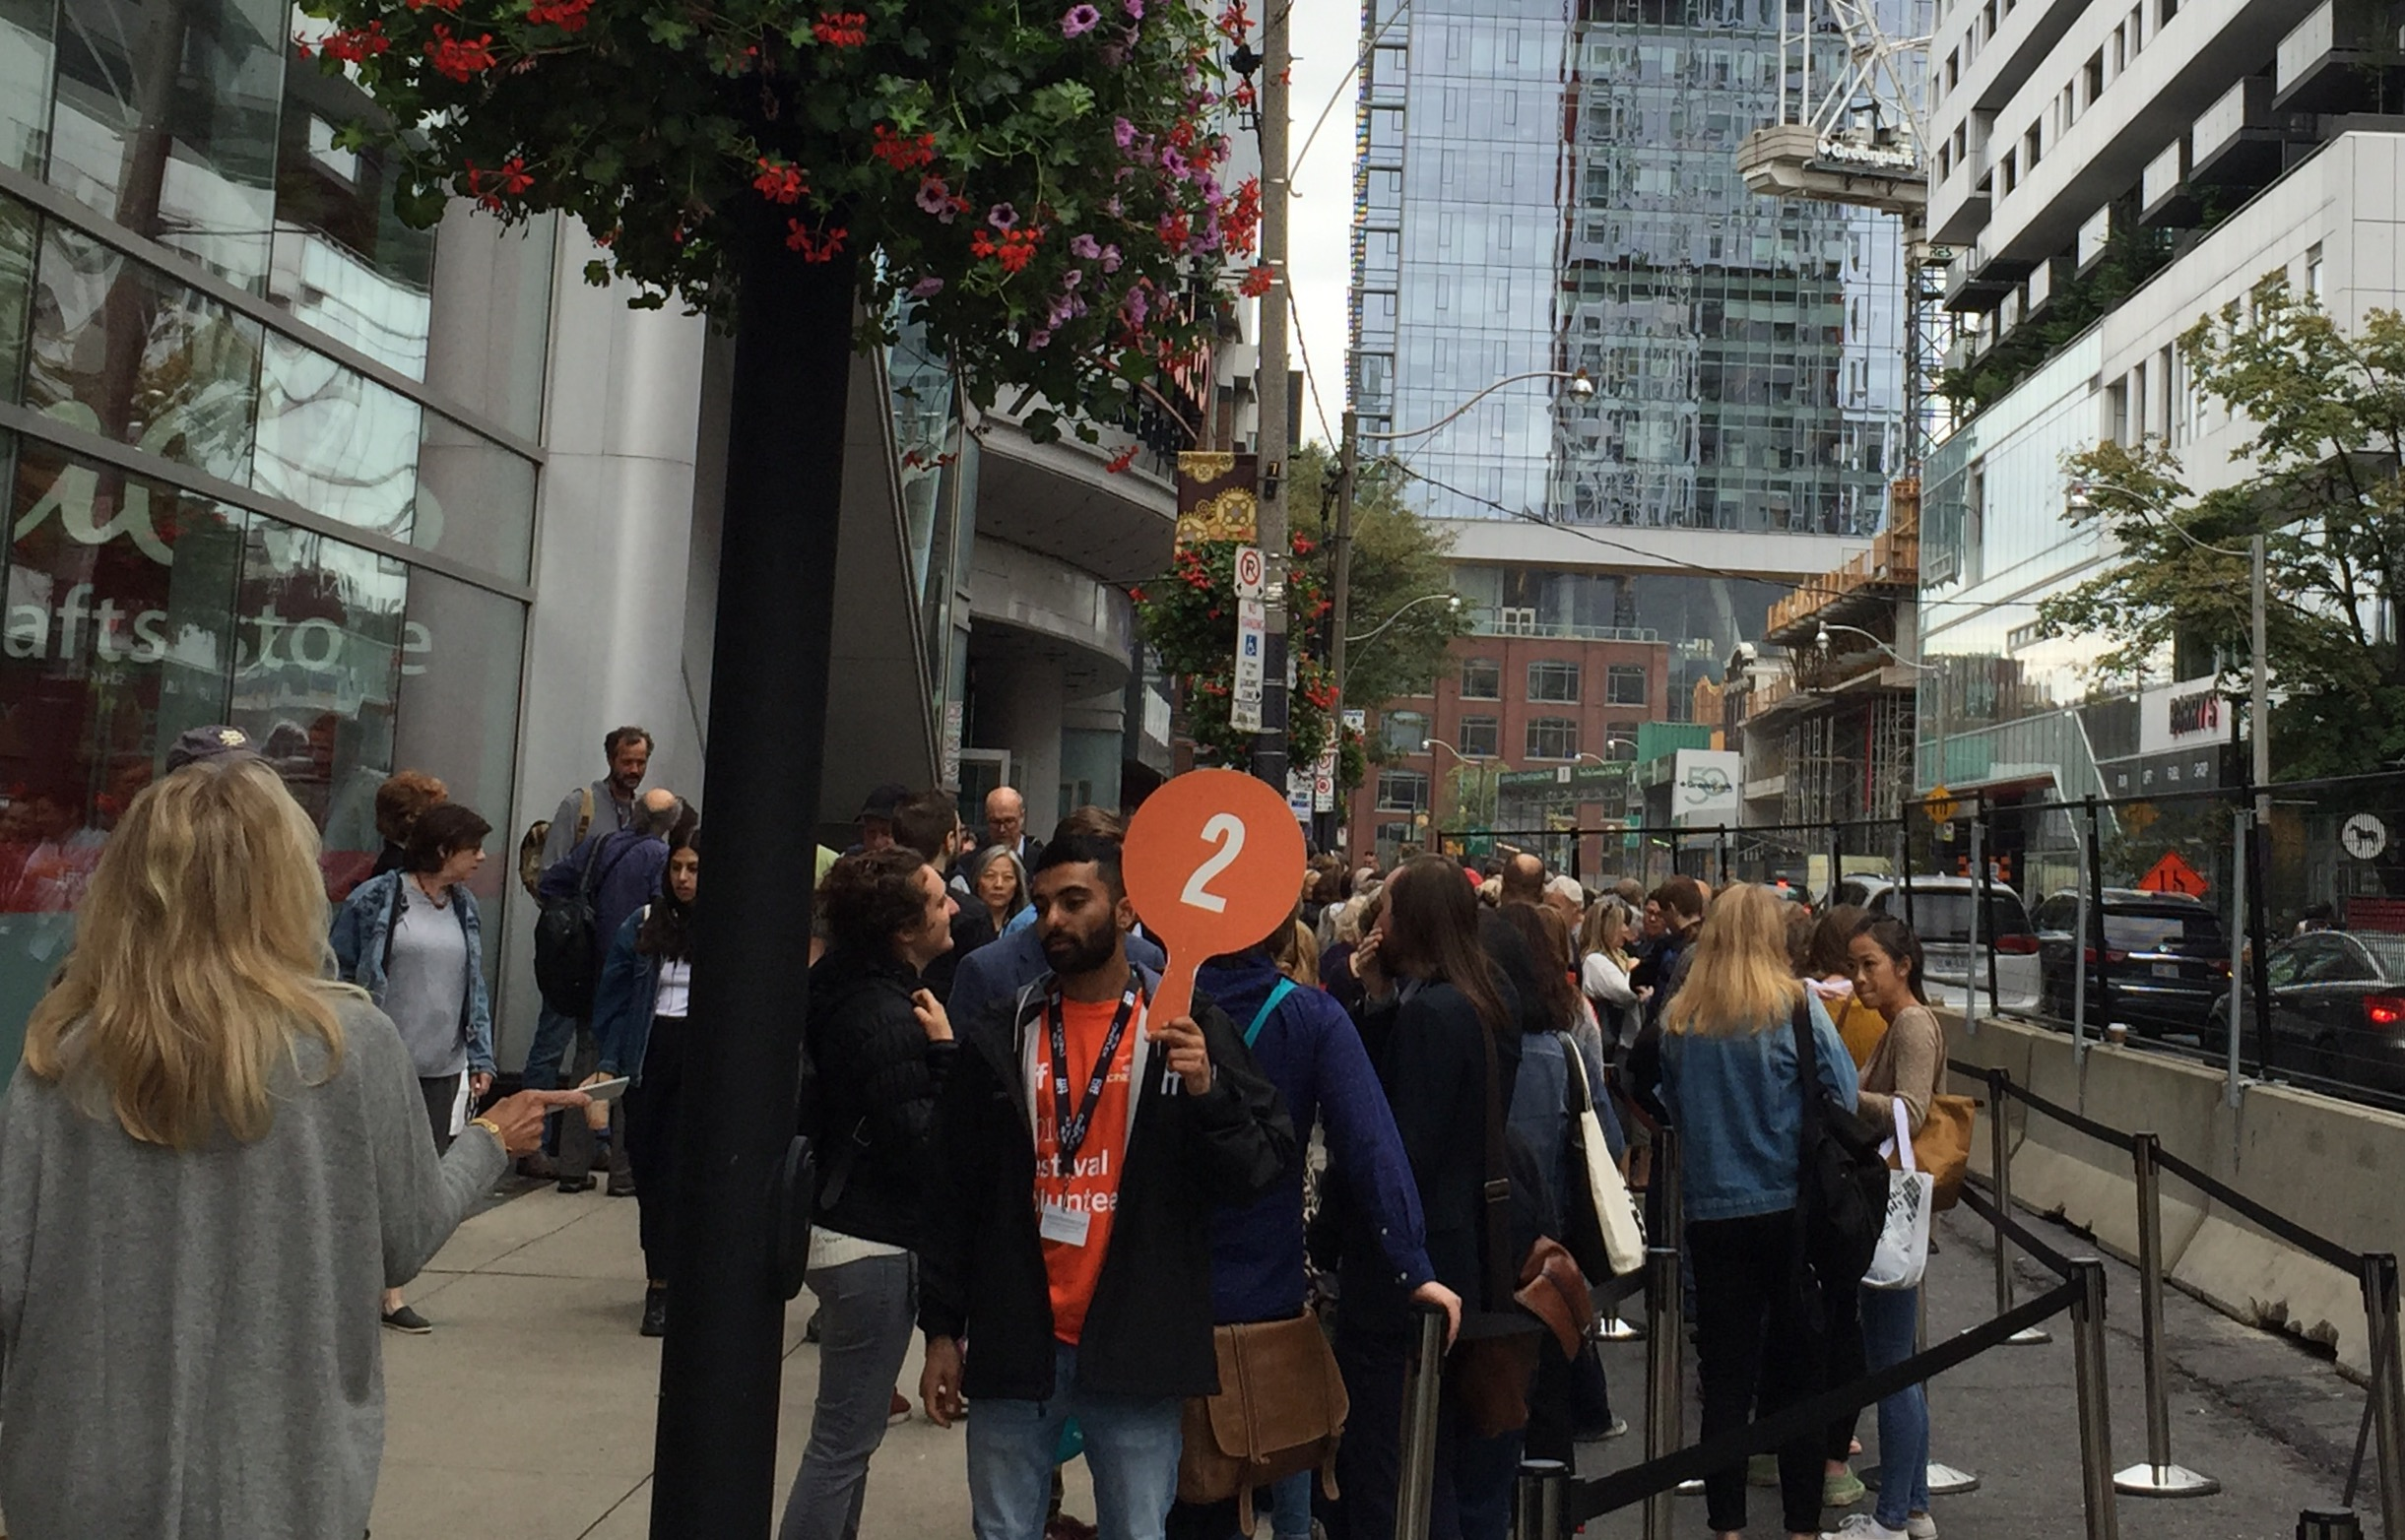 Long lines are the norm at Toronto International Film Festival screenings, scattered throughout the downtown area. The Festival is estimated to contribute some $189 million to the area's economy with nearly 400 films shown during the 10 days.